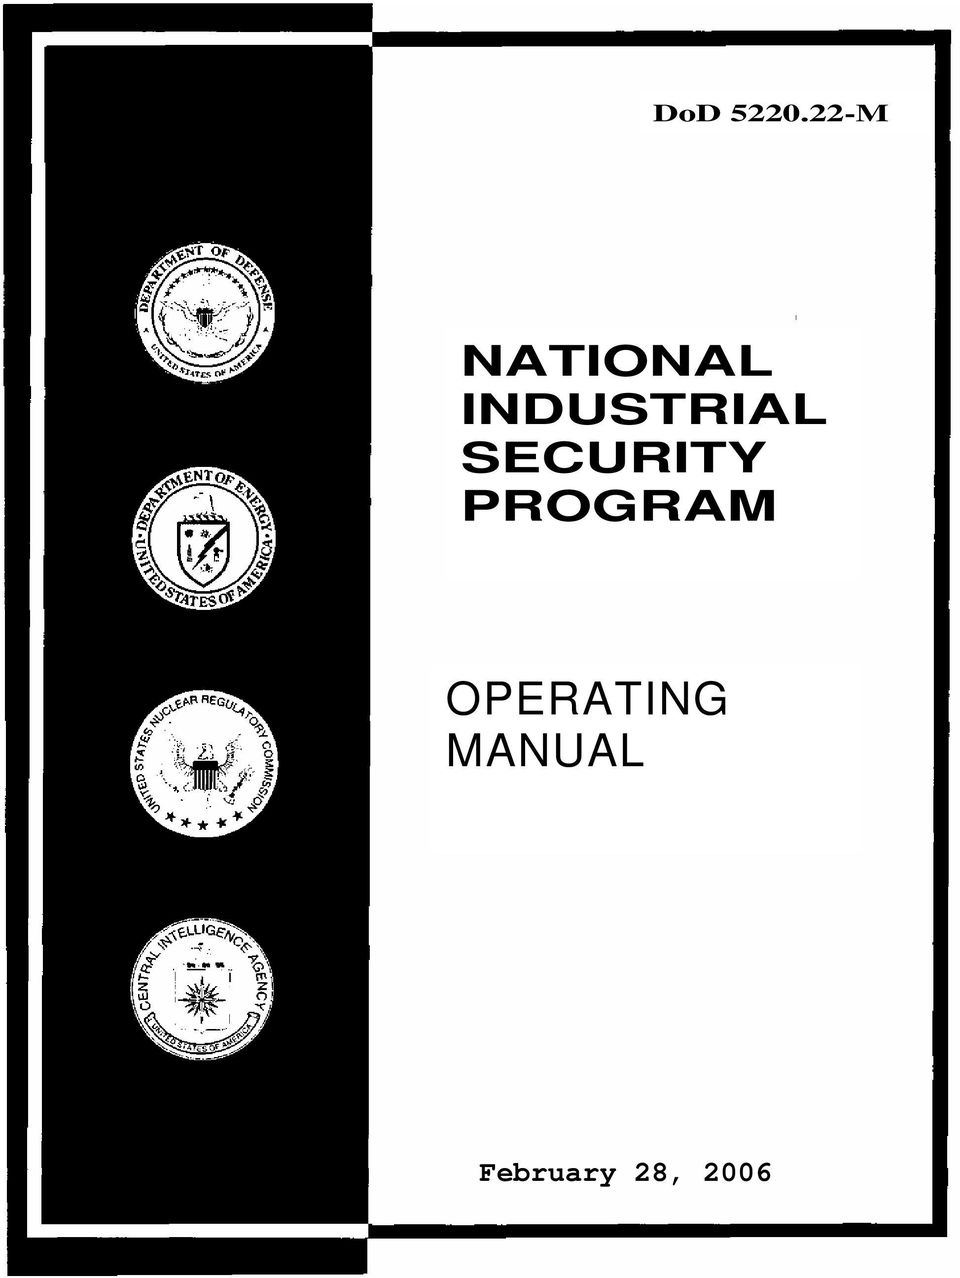 industrial security manual for safeguarding classified information